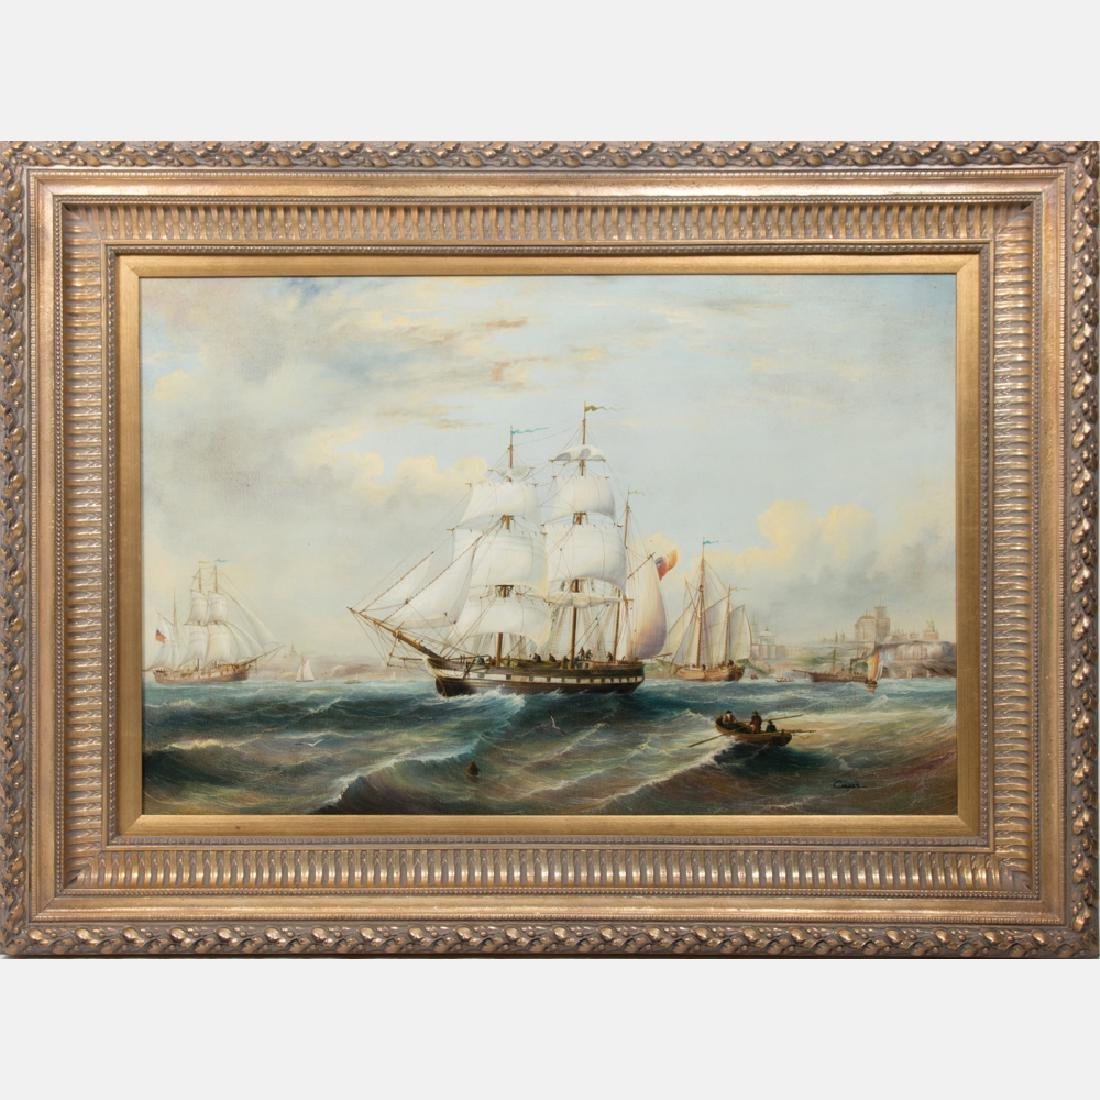 Cooper (20th Century) Harbor Scene with Boats, Oil on